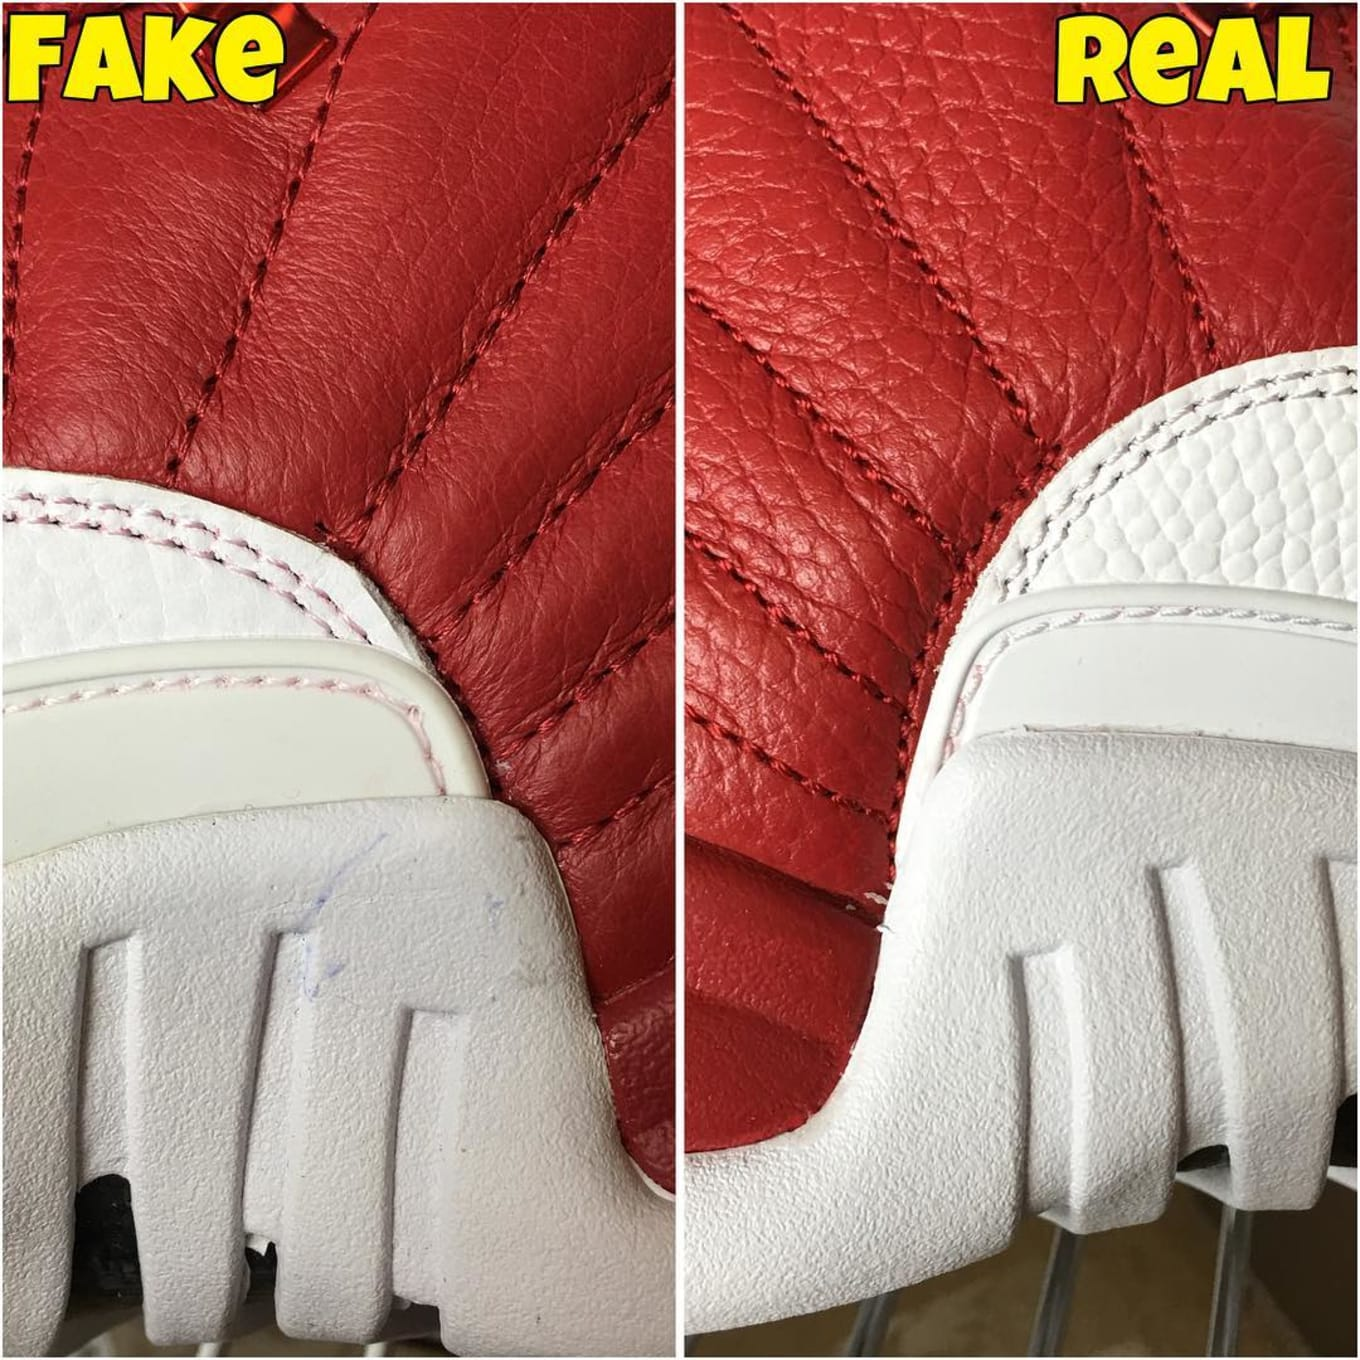 low cost c7f4e a0163 Air Jordan XII 12 Gym Red Real Fake Legit Check | Sole Collector